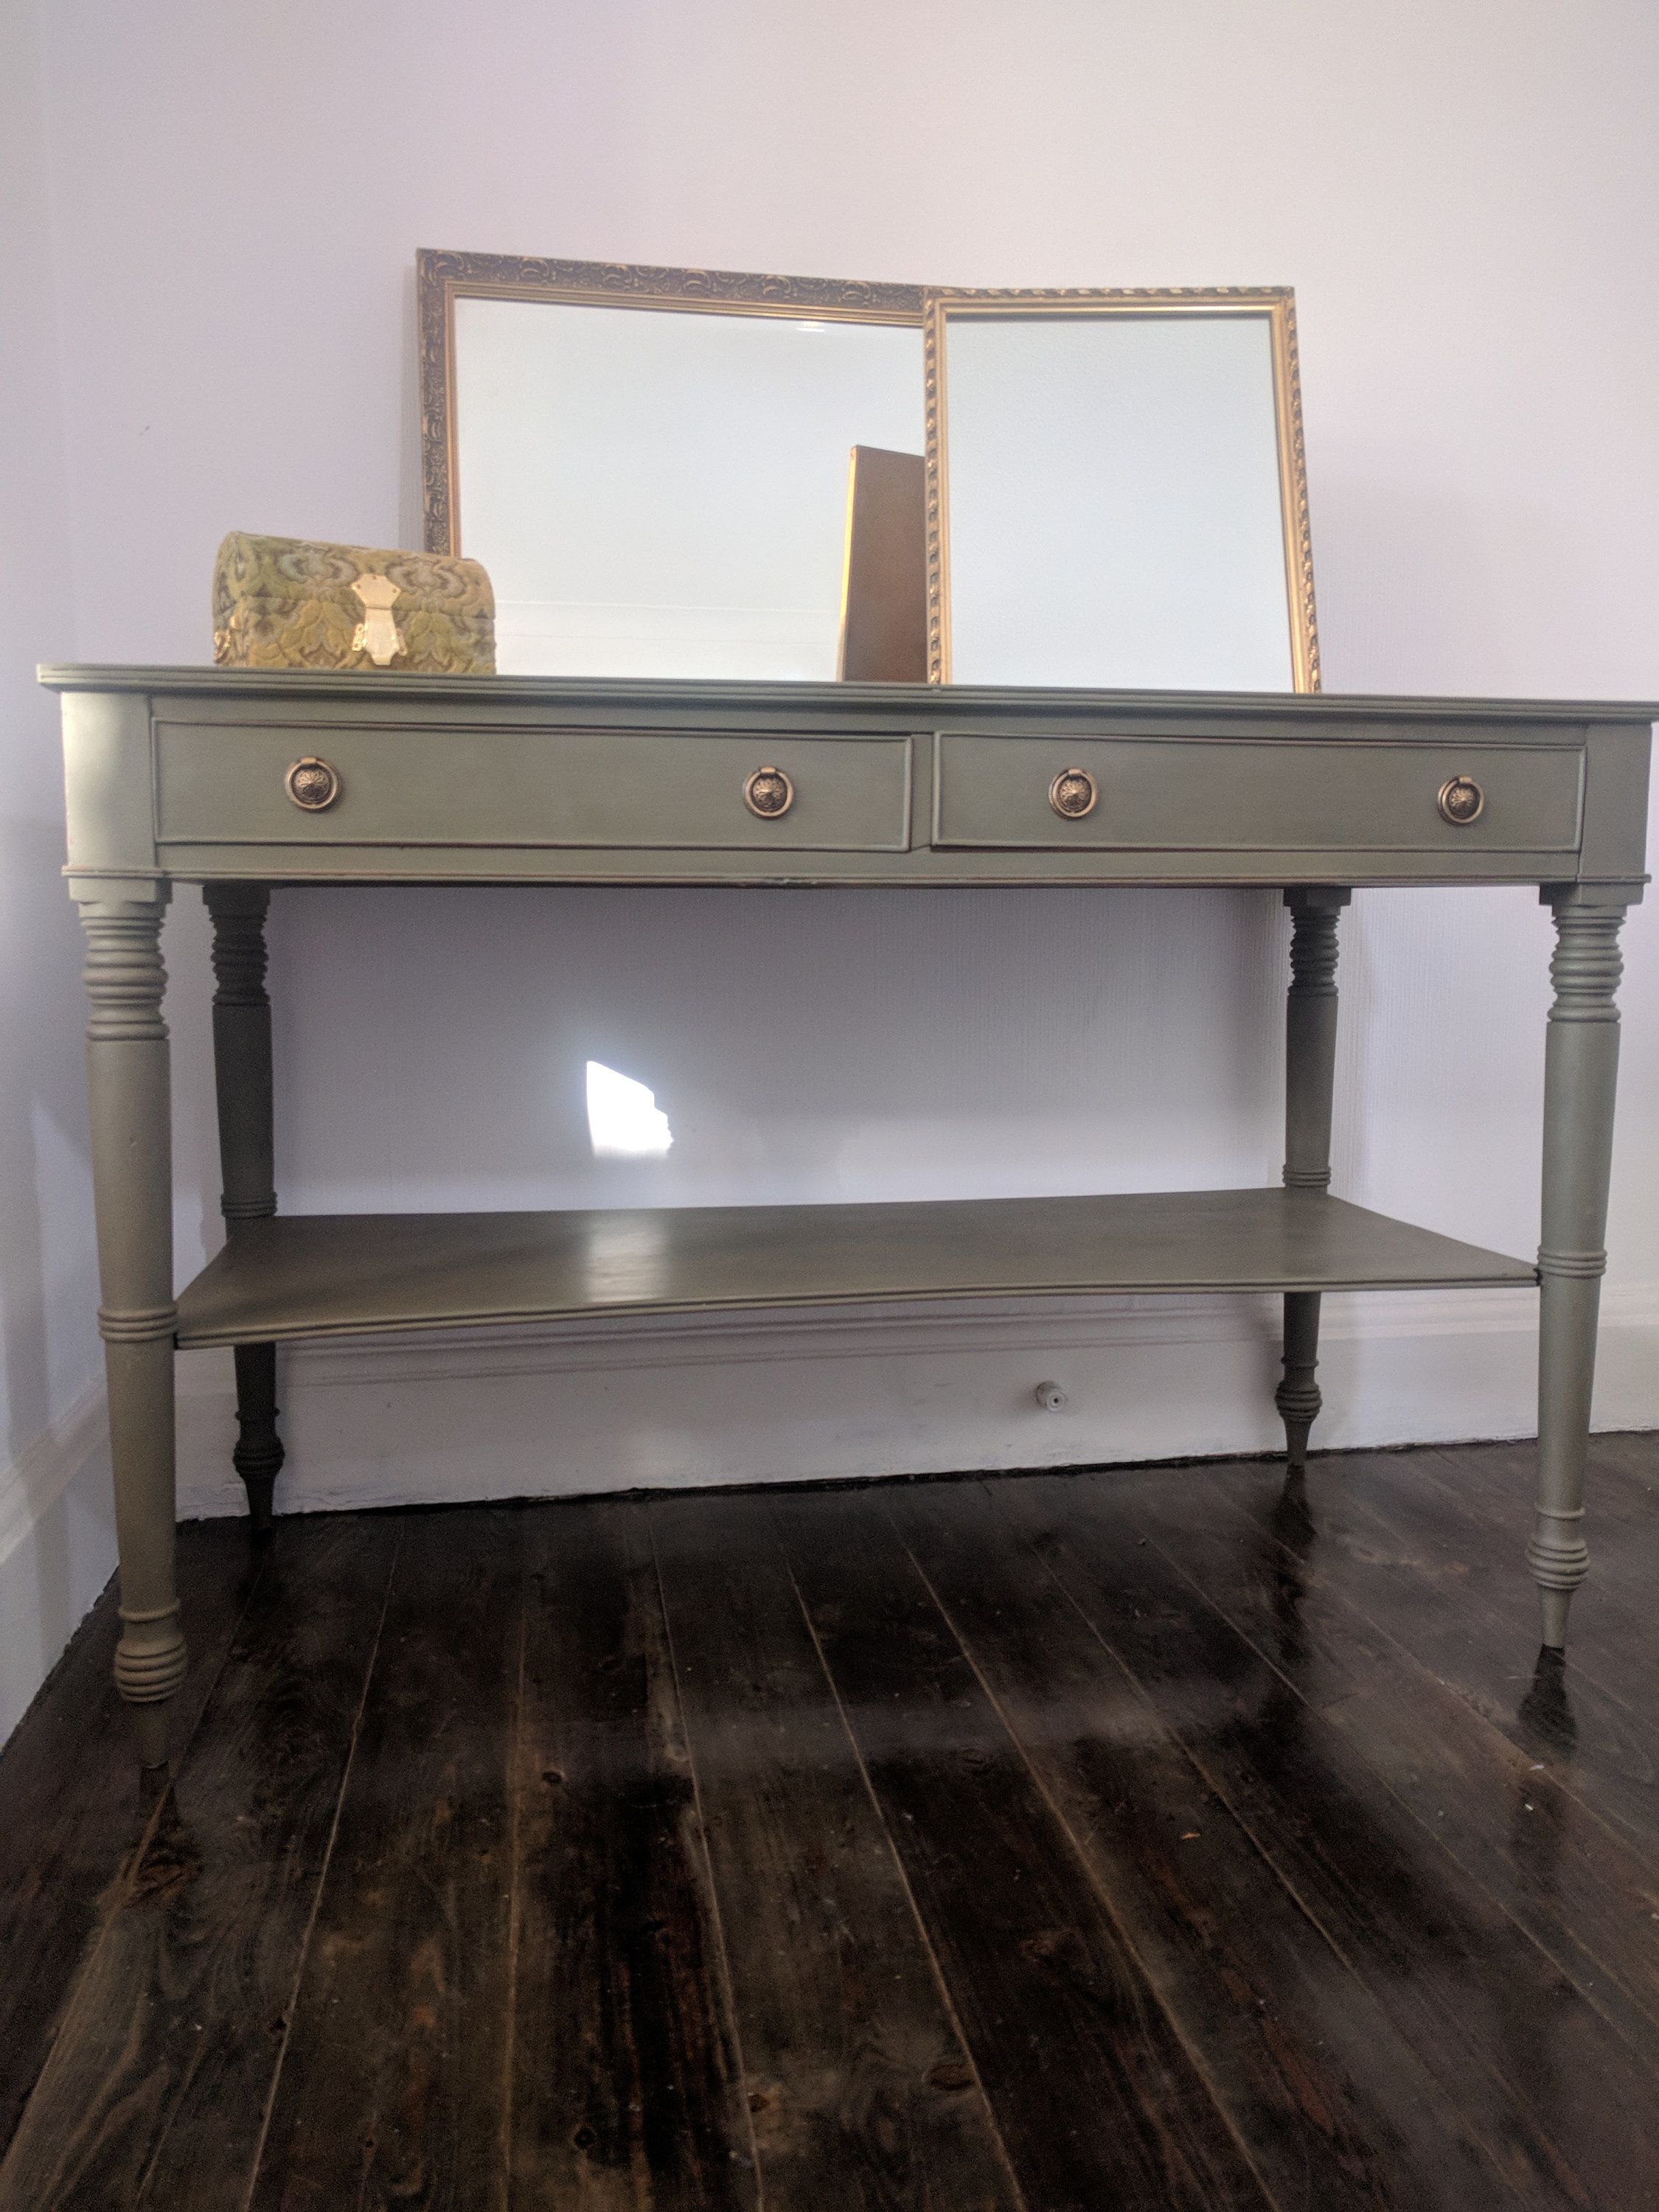 Painted Antique Console Table With Shelf Antique Console Table Console Table Shelves